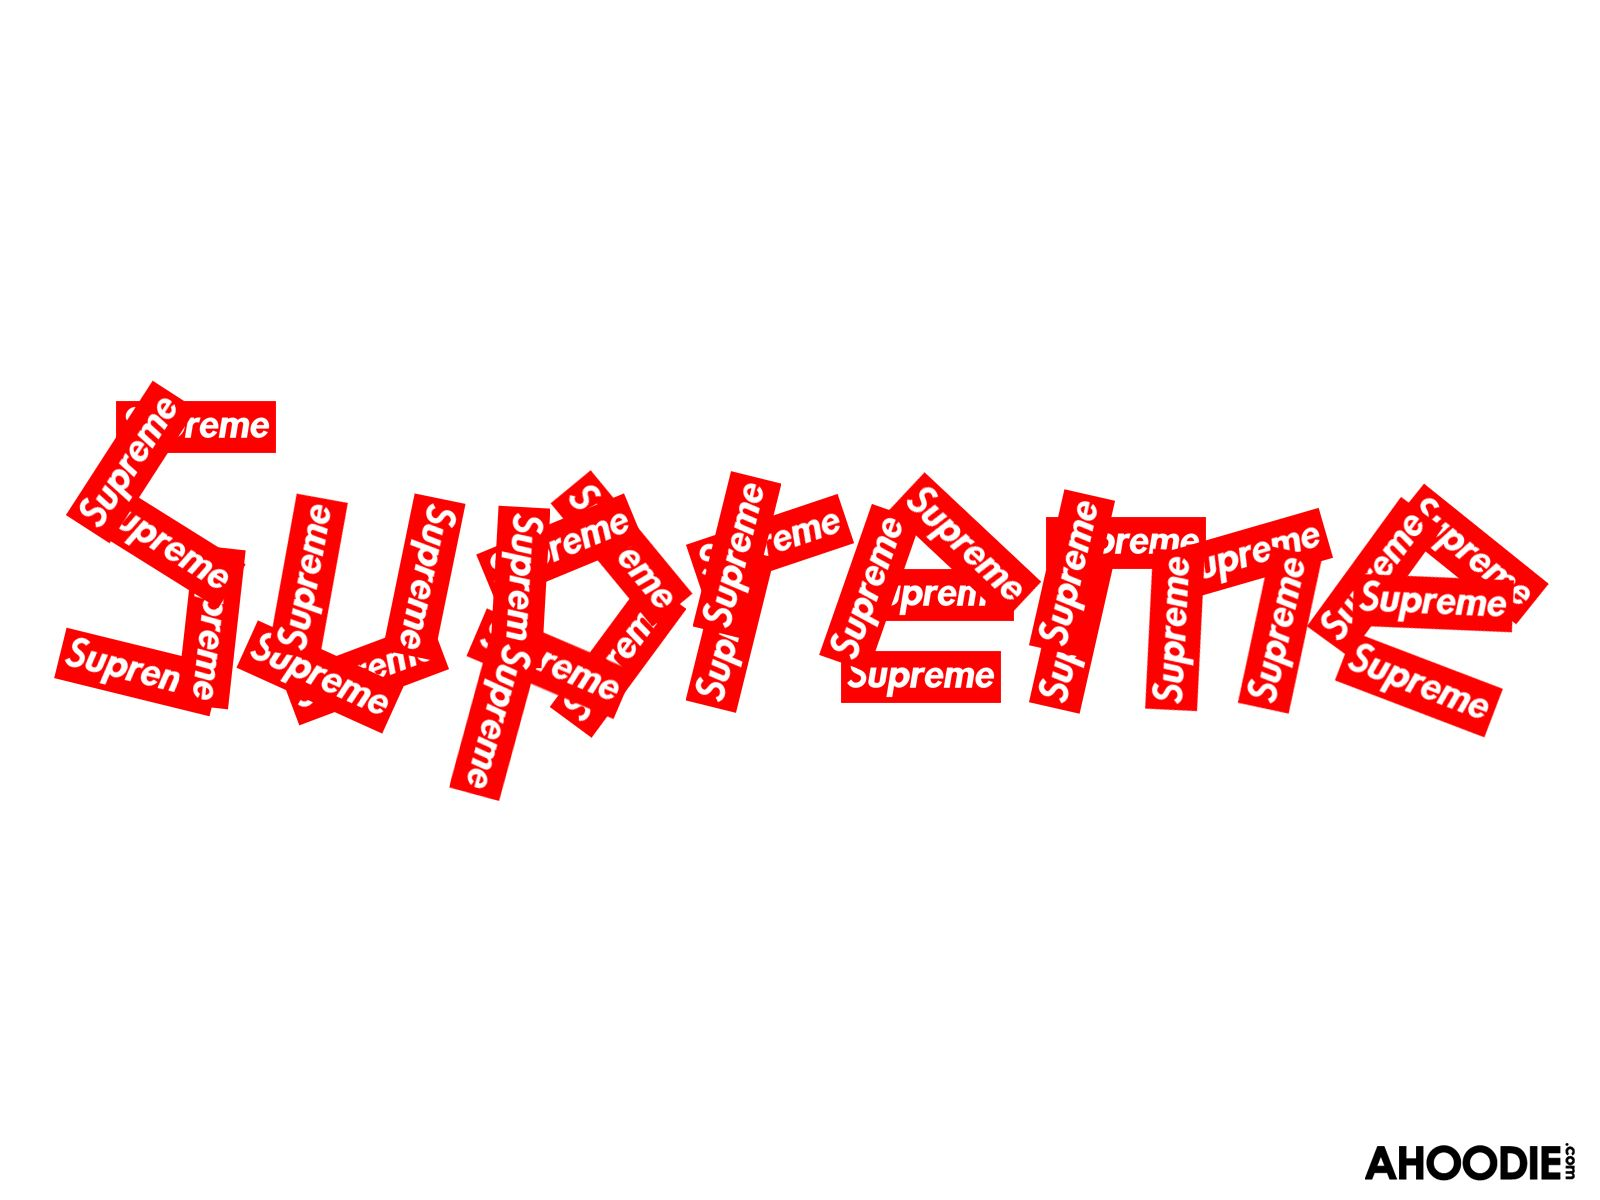 httpwwwahoodiecomwallpaperssupreme wallpaper 1600x1200